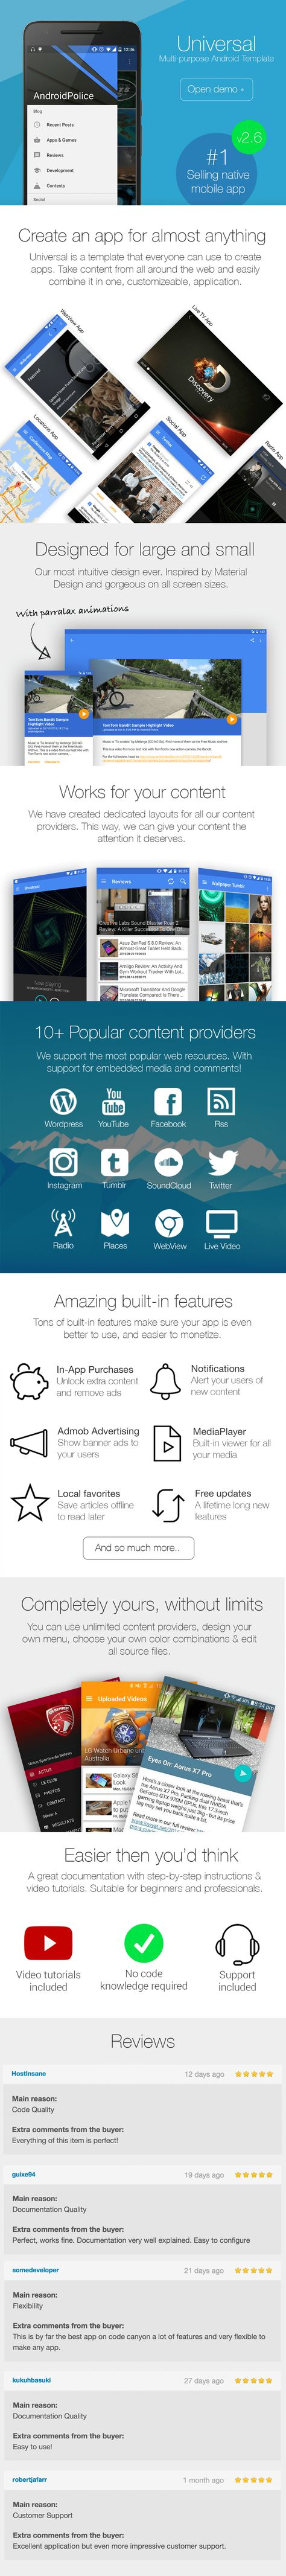 16 best mobile app templates images on pinterest mobile app templates mobile ui and android